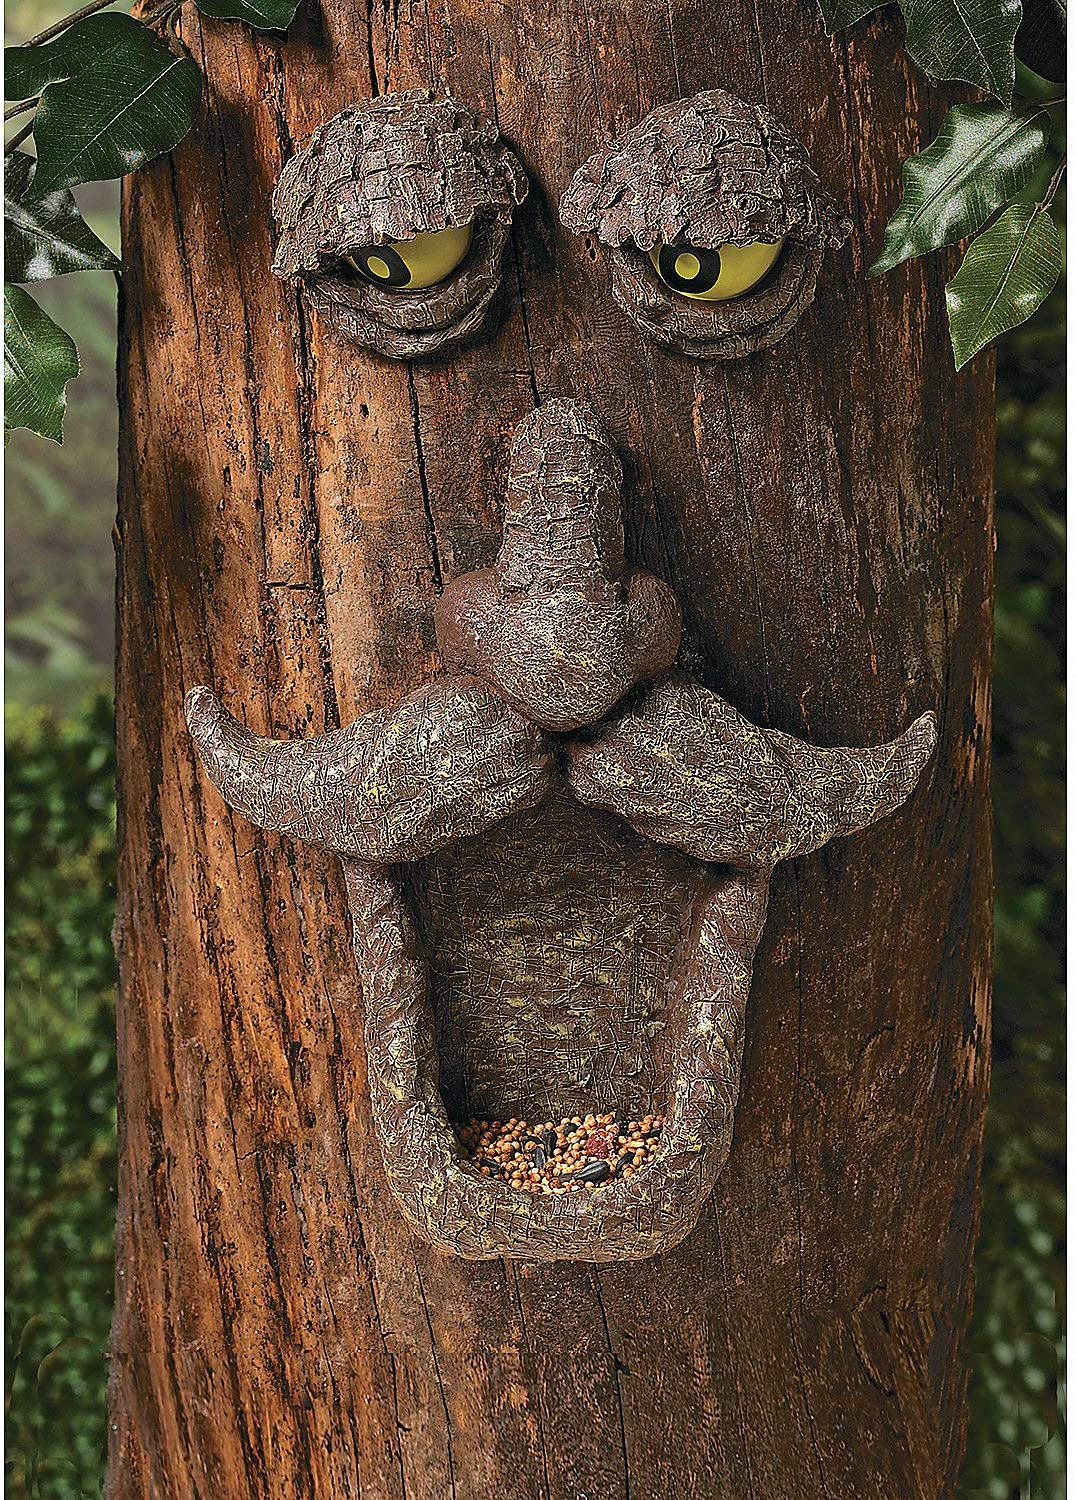 Tree Face Bird Feeder (Hand Painted) Fun Outdoor Decor Includes Glow in The Dark Eyes